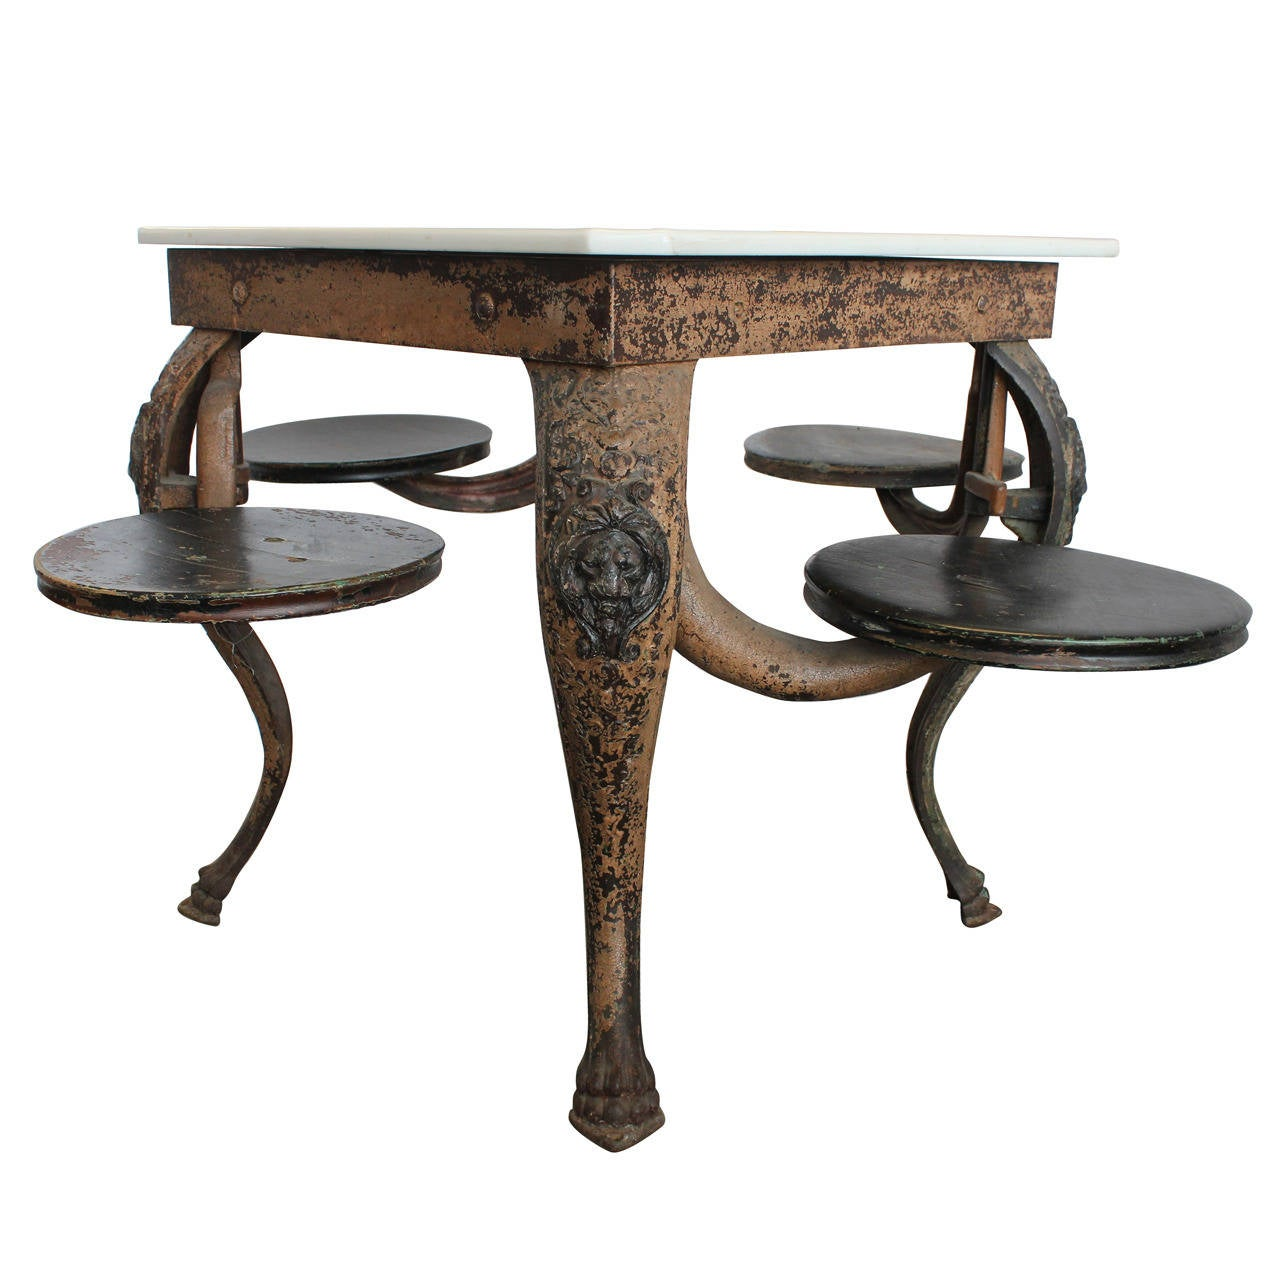 S ice cream parlor cast iron table at stdibs